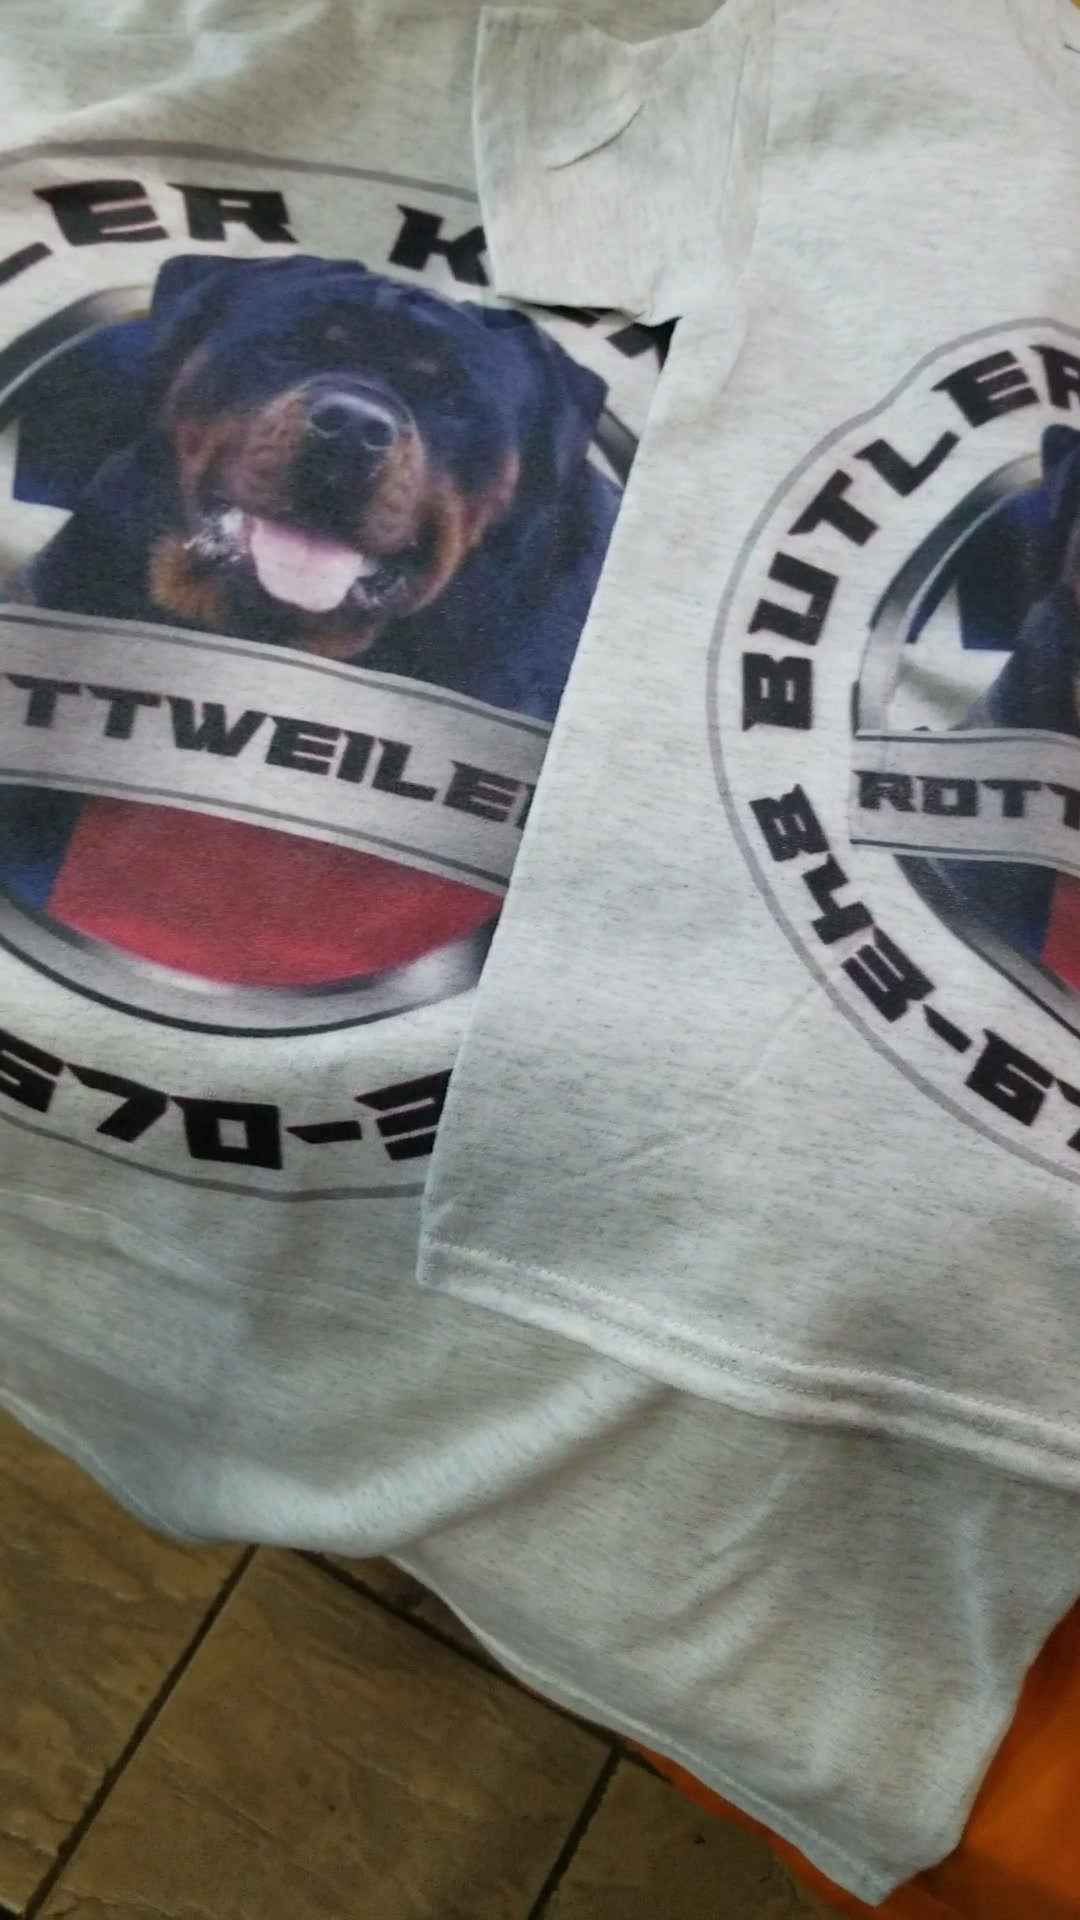 Fresh off the press.. our first shirts made. Everyone has been asking about them...shirts shirts 👕👕👕👔🎽 8436703346